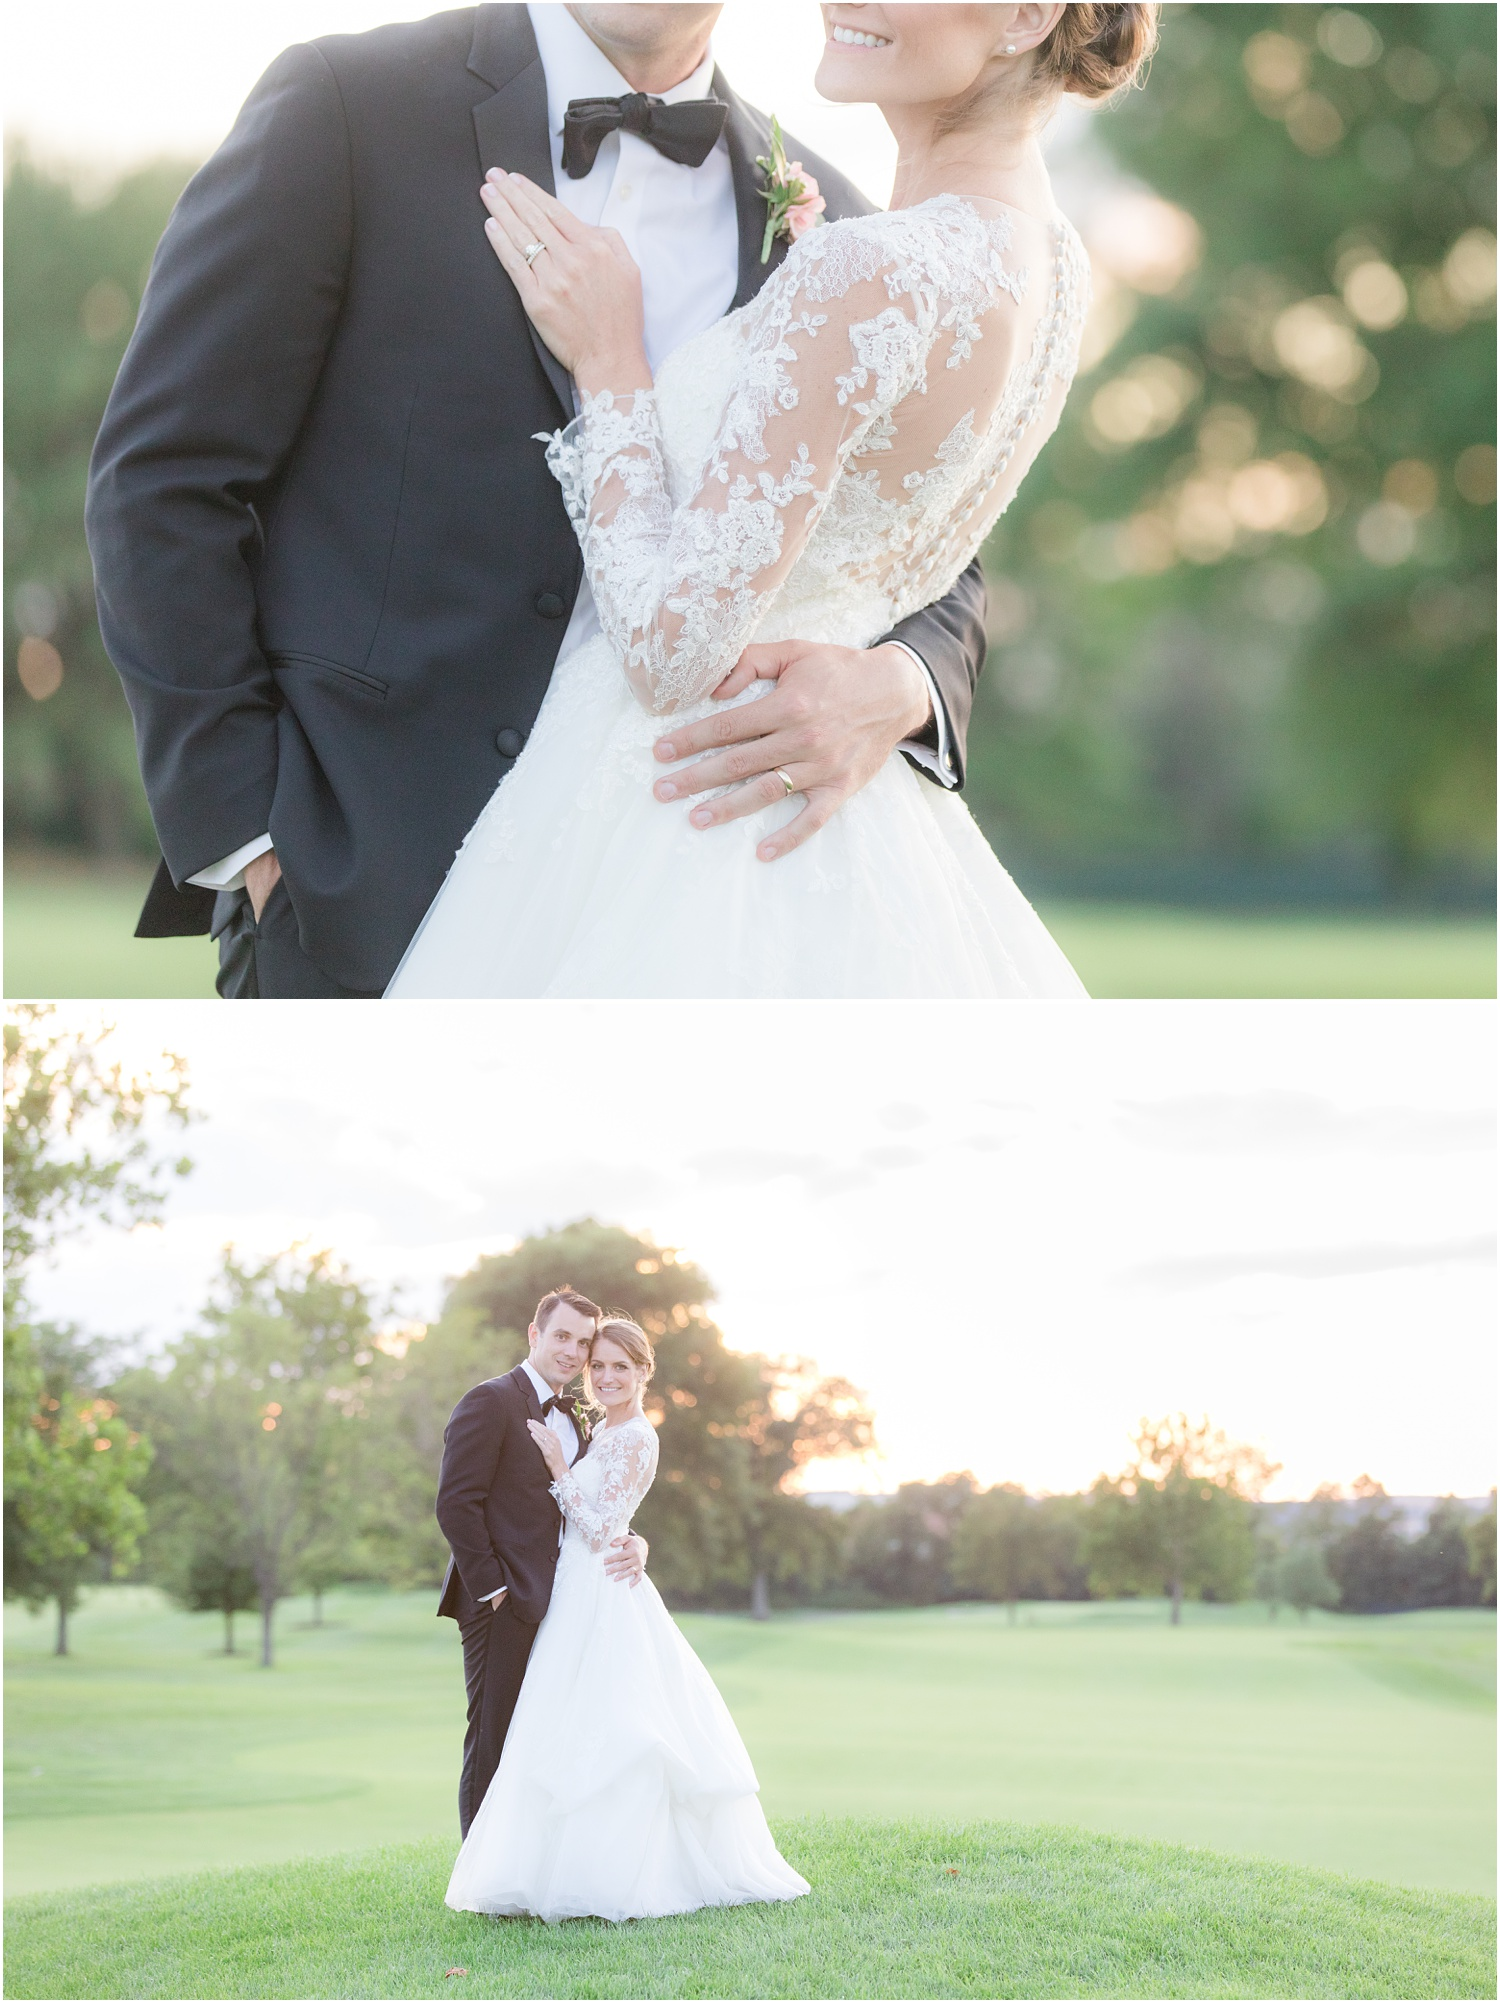 Sunset wedding portaits at Canoe Brook Country Club